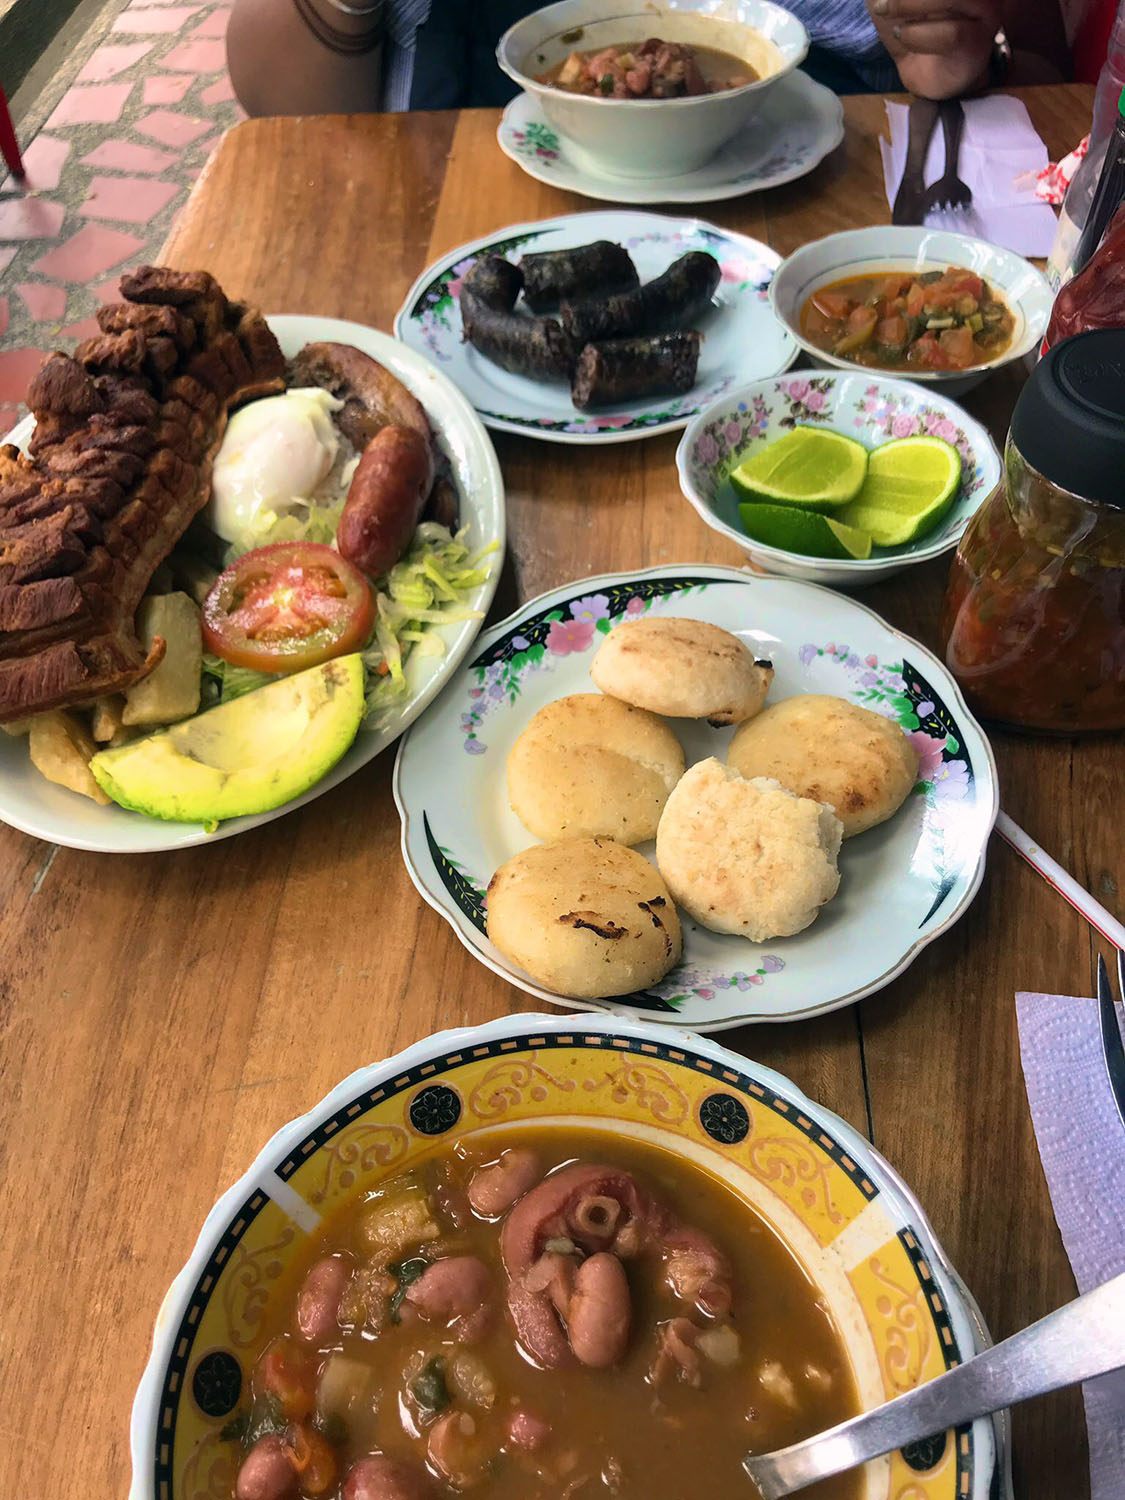 table fully loaded with a local meal called Bandeja Paisa